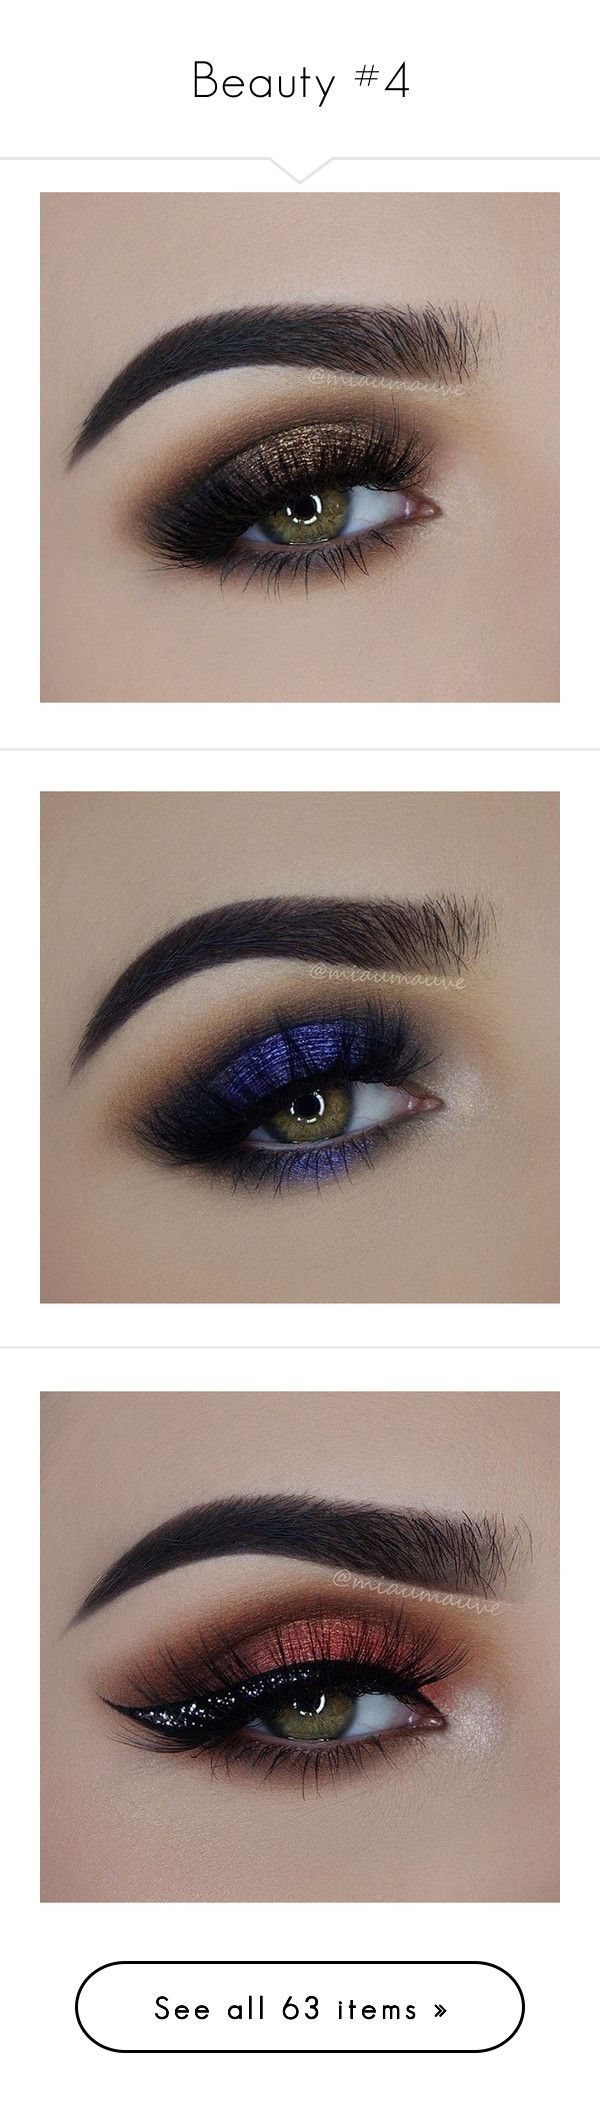 """""""Beauty #4"""" by susannah-biersack ❤ liked on Polyvore featuring makeup, eyes, beauty products, lip makeup, lipstick, lips, beauty, eyeshadow, make and maquiagem"""